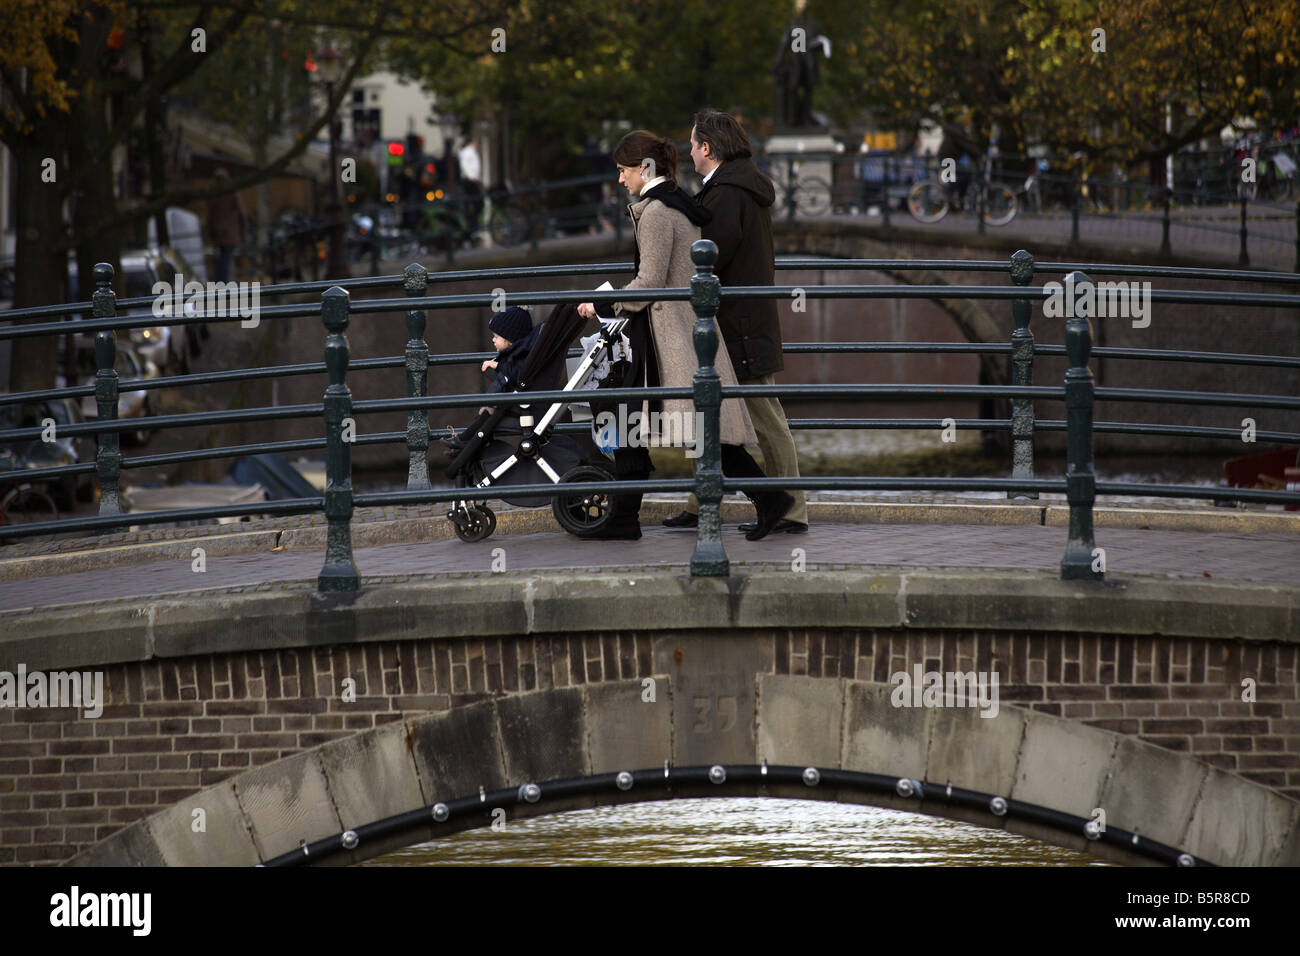 A family walking over the bridge at the Prinsengracht, Amsterdam - Stock Image